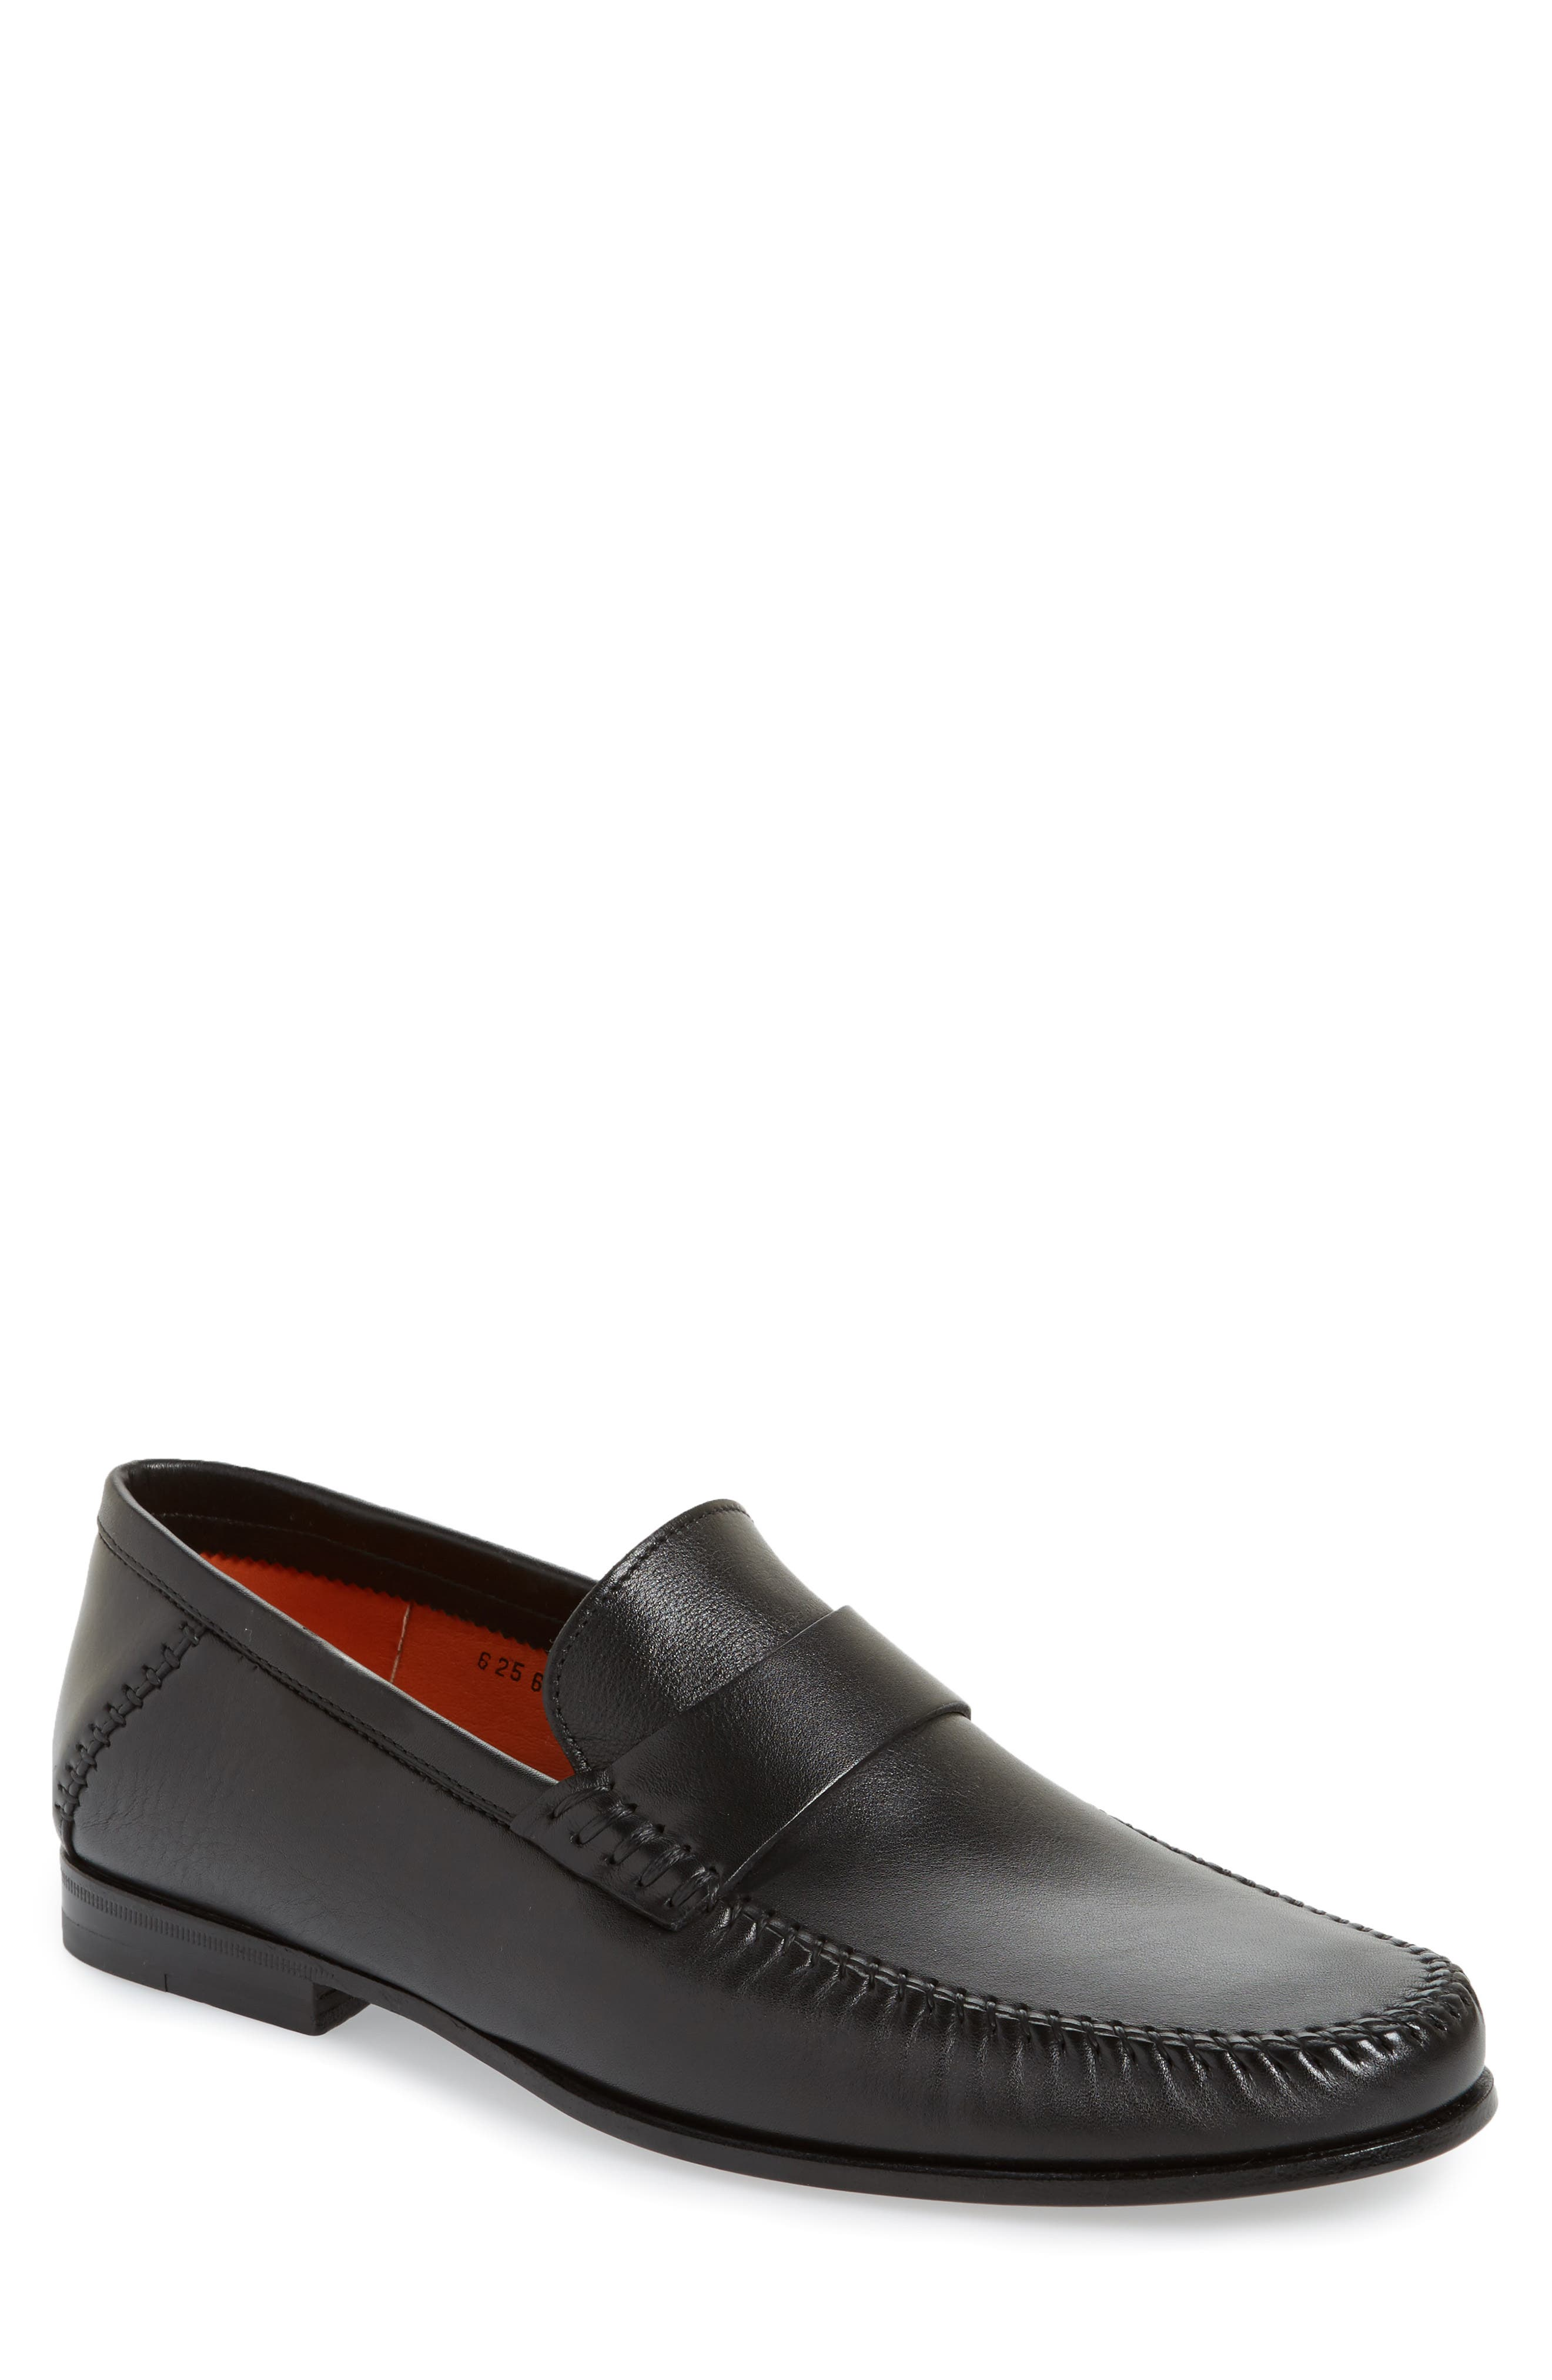 'Paine' Loafer, Main, color, 002